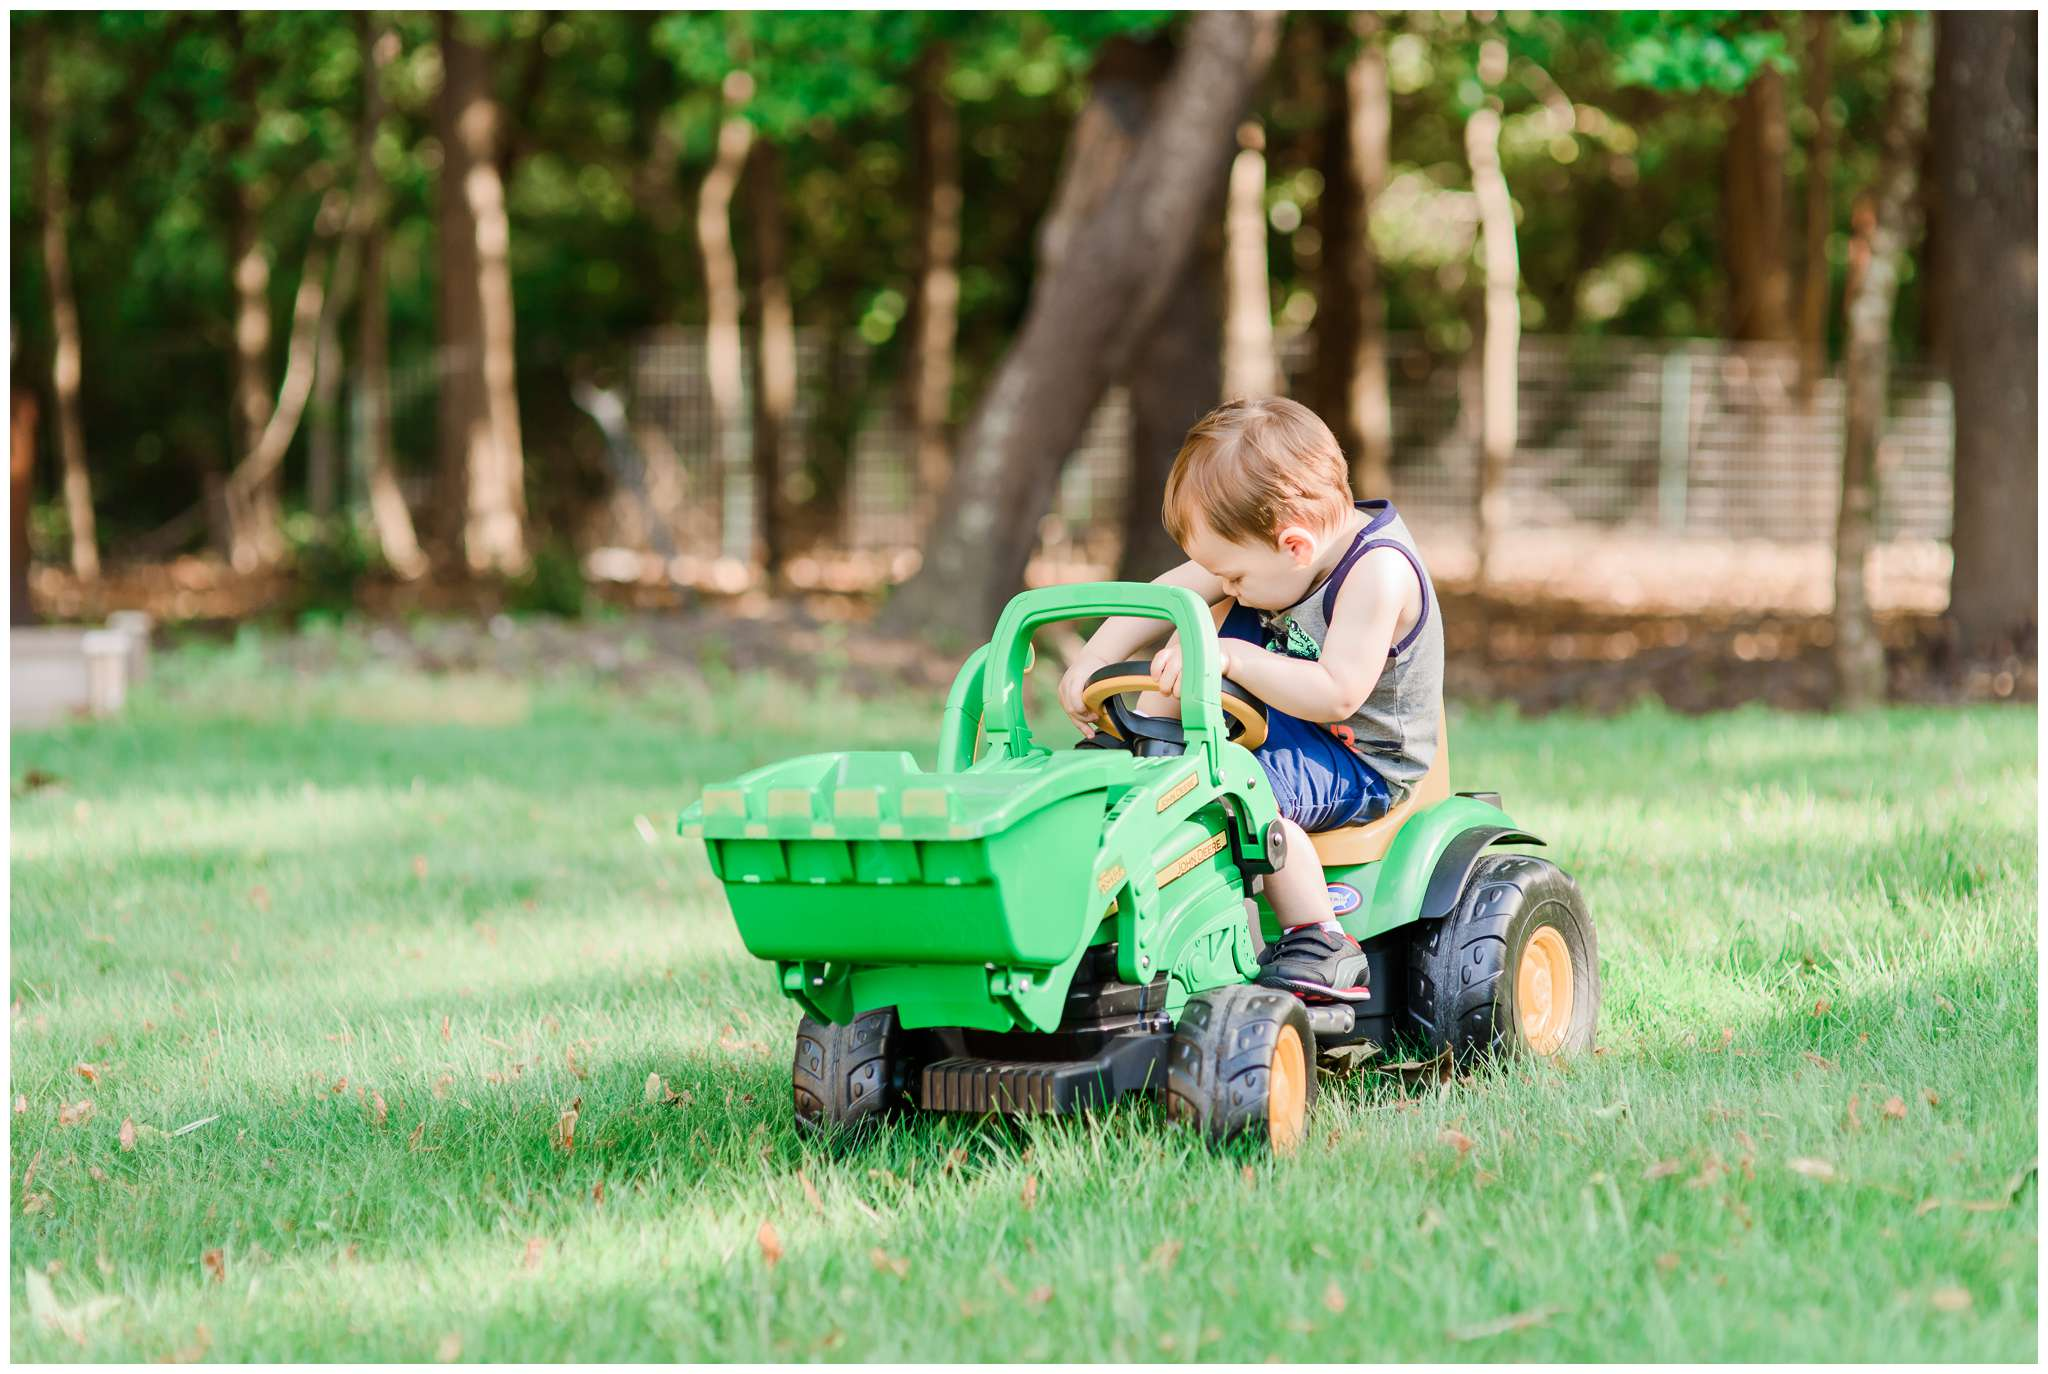 Liam and Tractor_4013.jpg